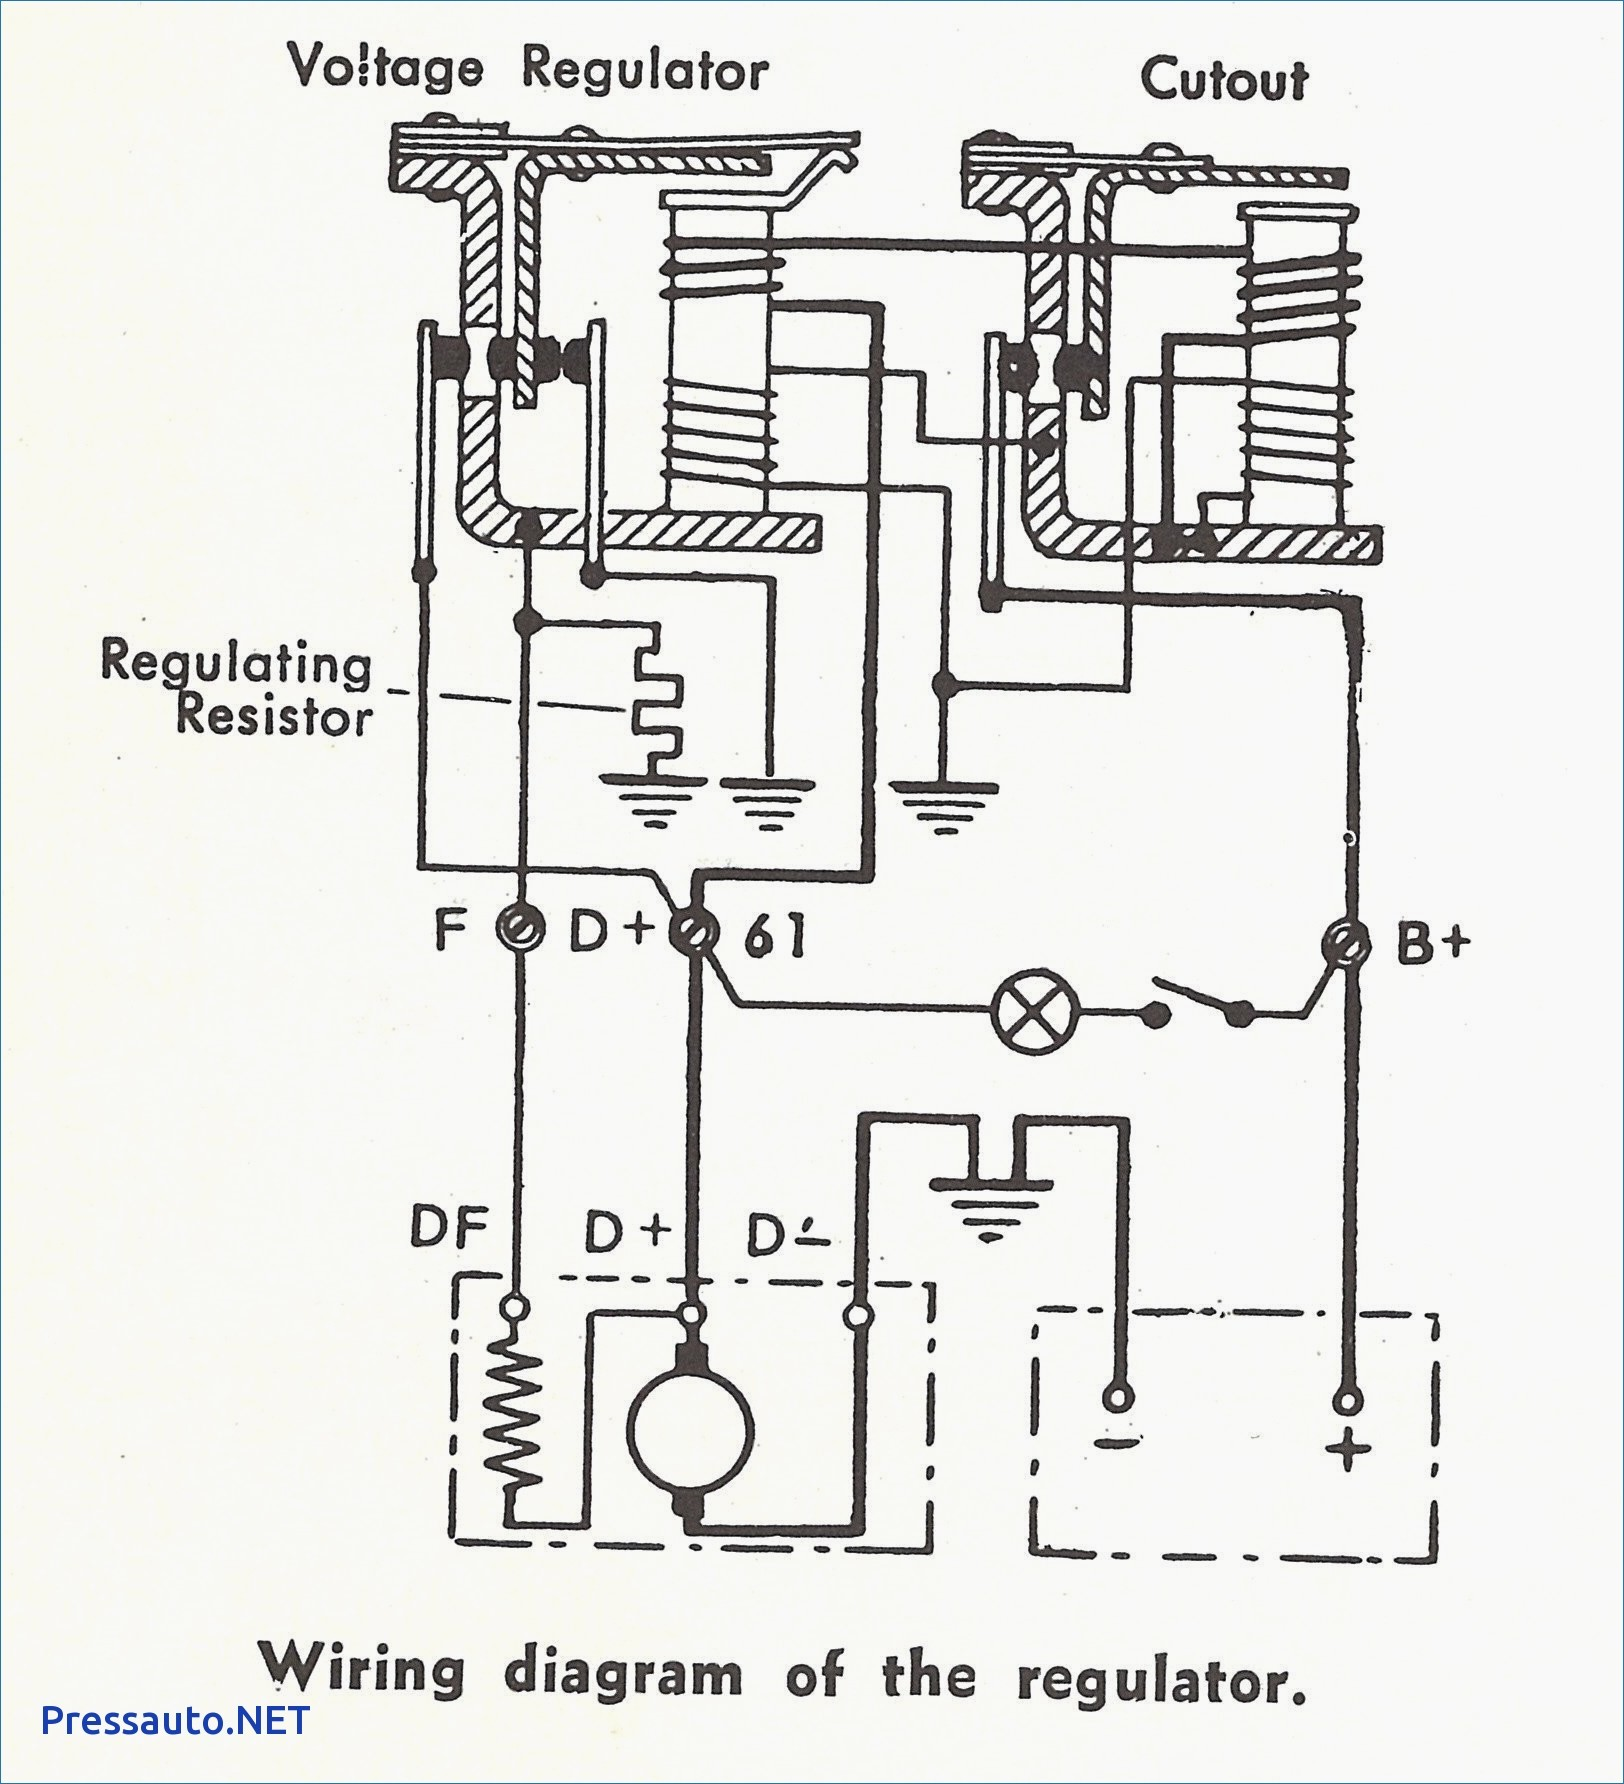 Vw Motorola Alternator Wiring Diagram Page 2 Wiring Diagram And 69 Bug Coil Wiring  Vw Beetle Alternator Wiring. Source. external voltage regulator ...